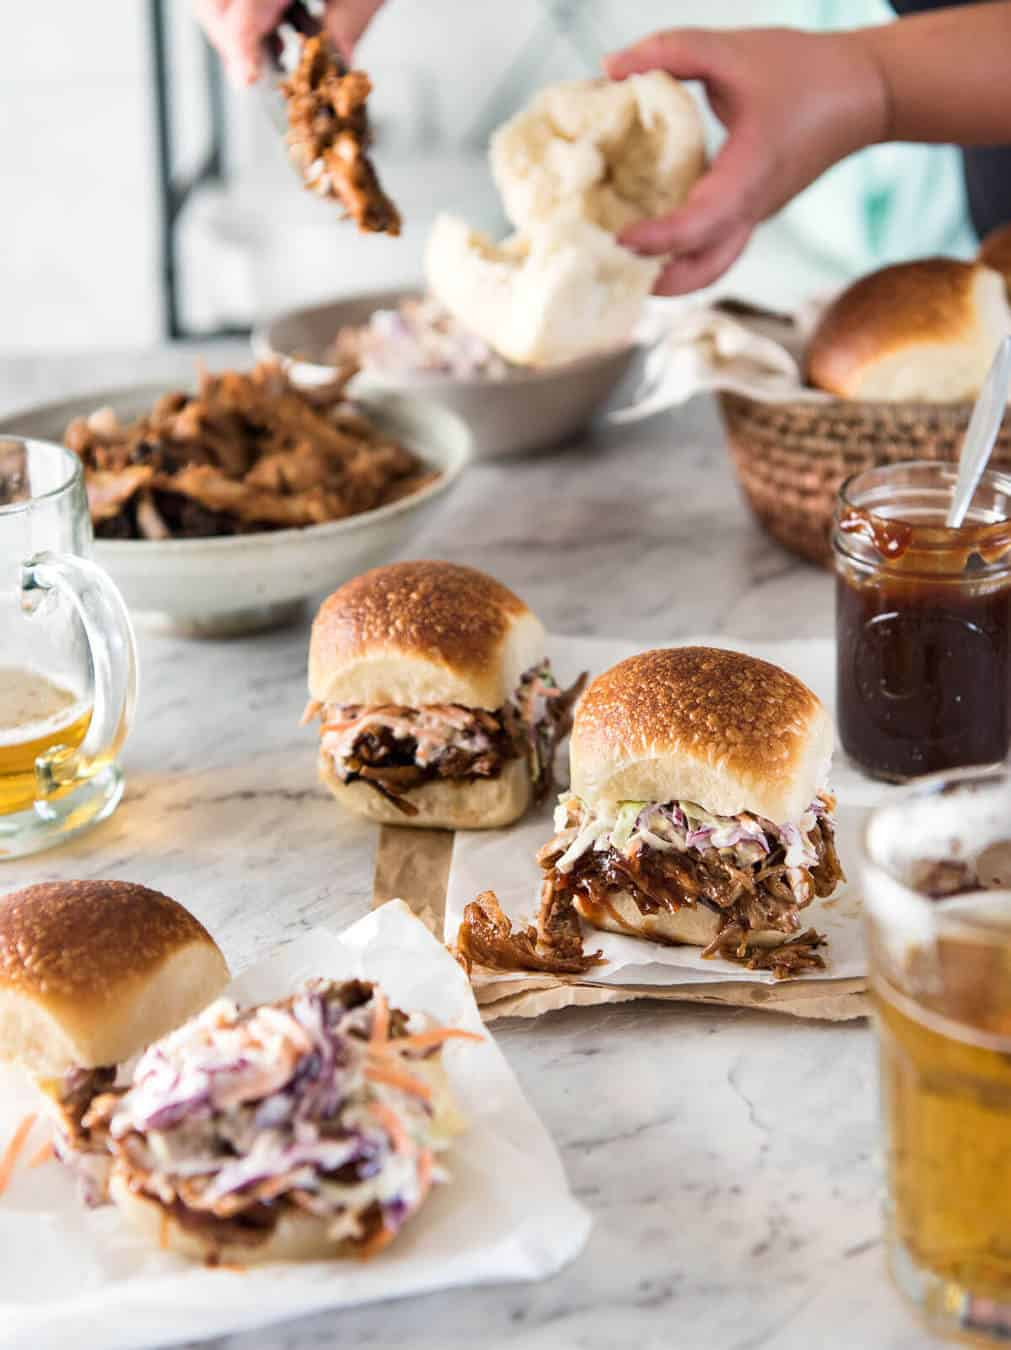 Slow Cooker BBQ Pulled Pork Sandwich - Perfectly seasoned, tender pulled pork tossed in a homemade BBQ sauce, piled onto bread with coleslaw. Slow cooker, pressure cooker or oven. www.recipetineats.com